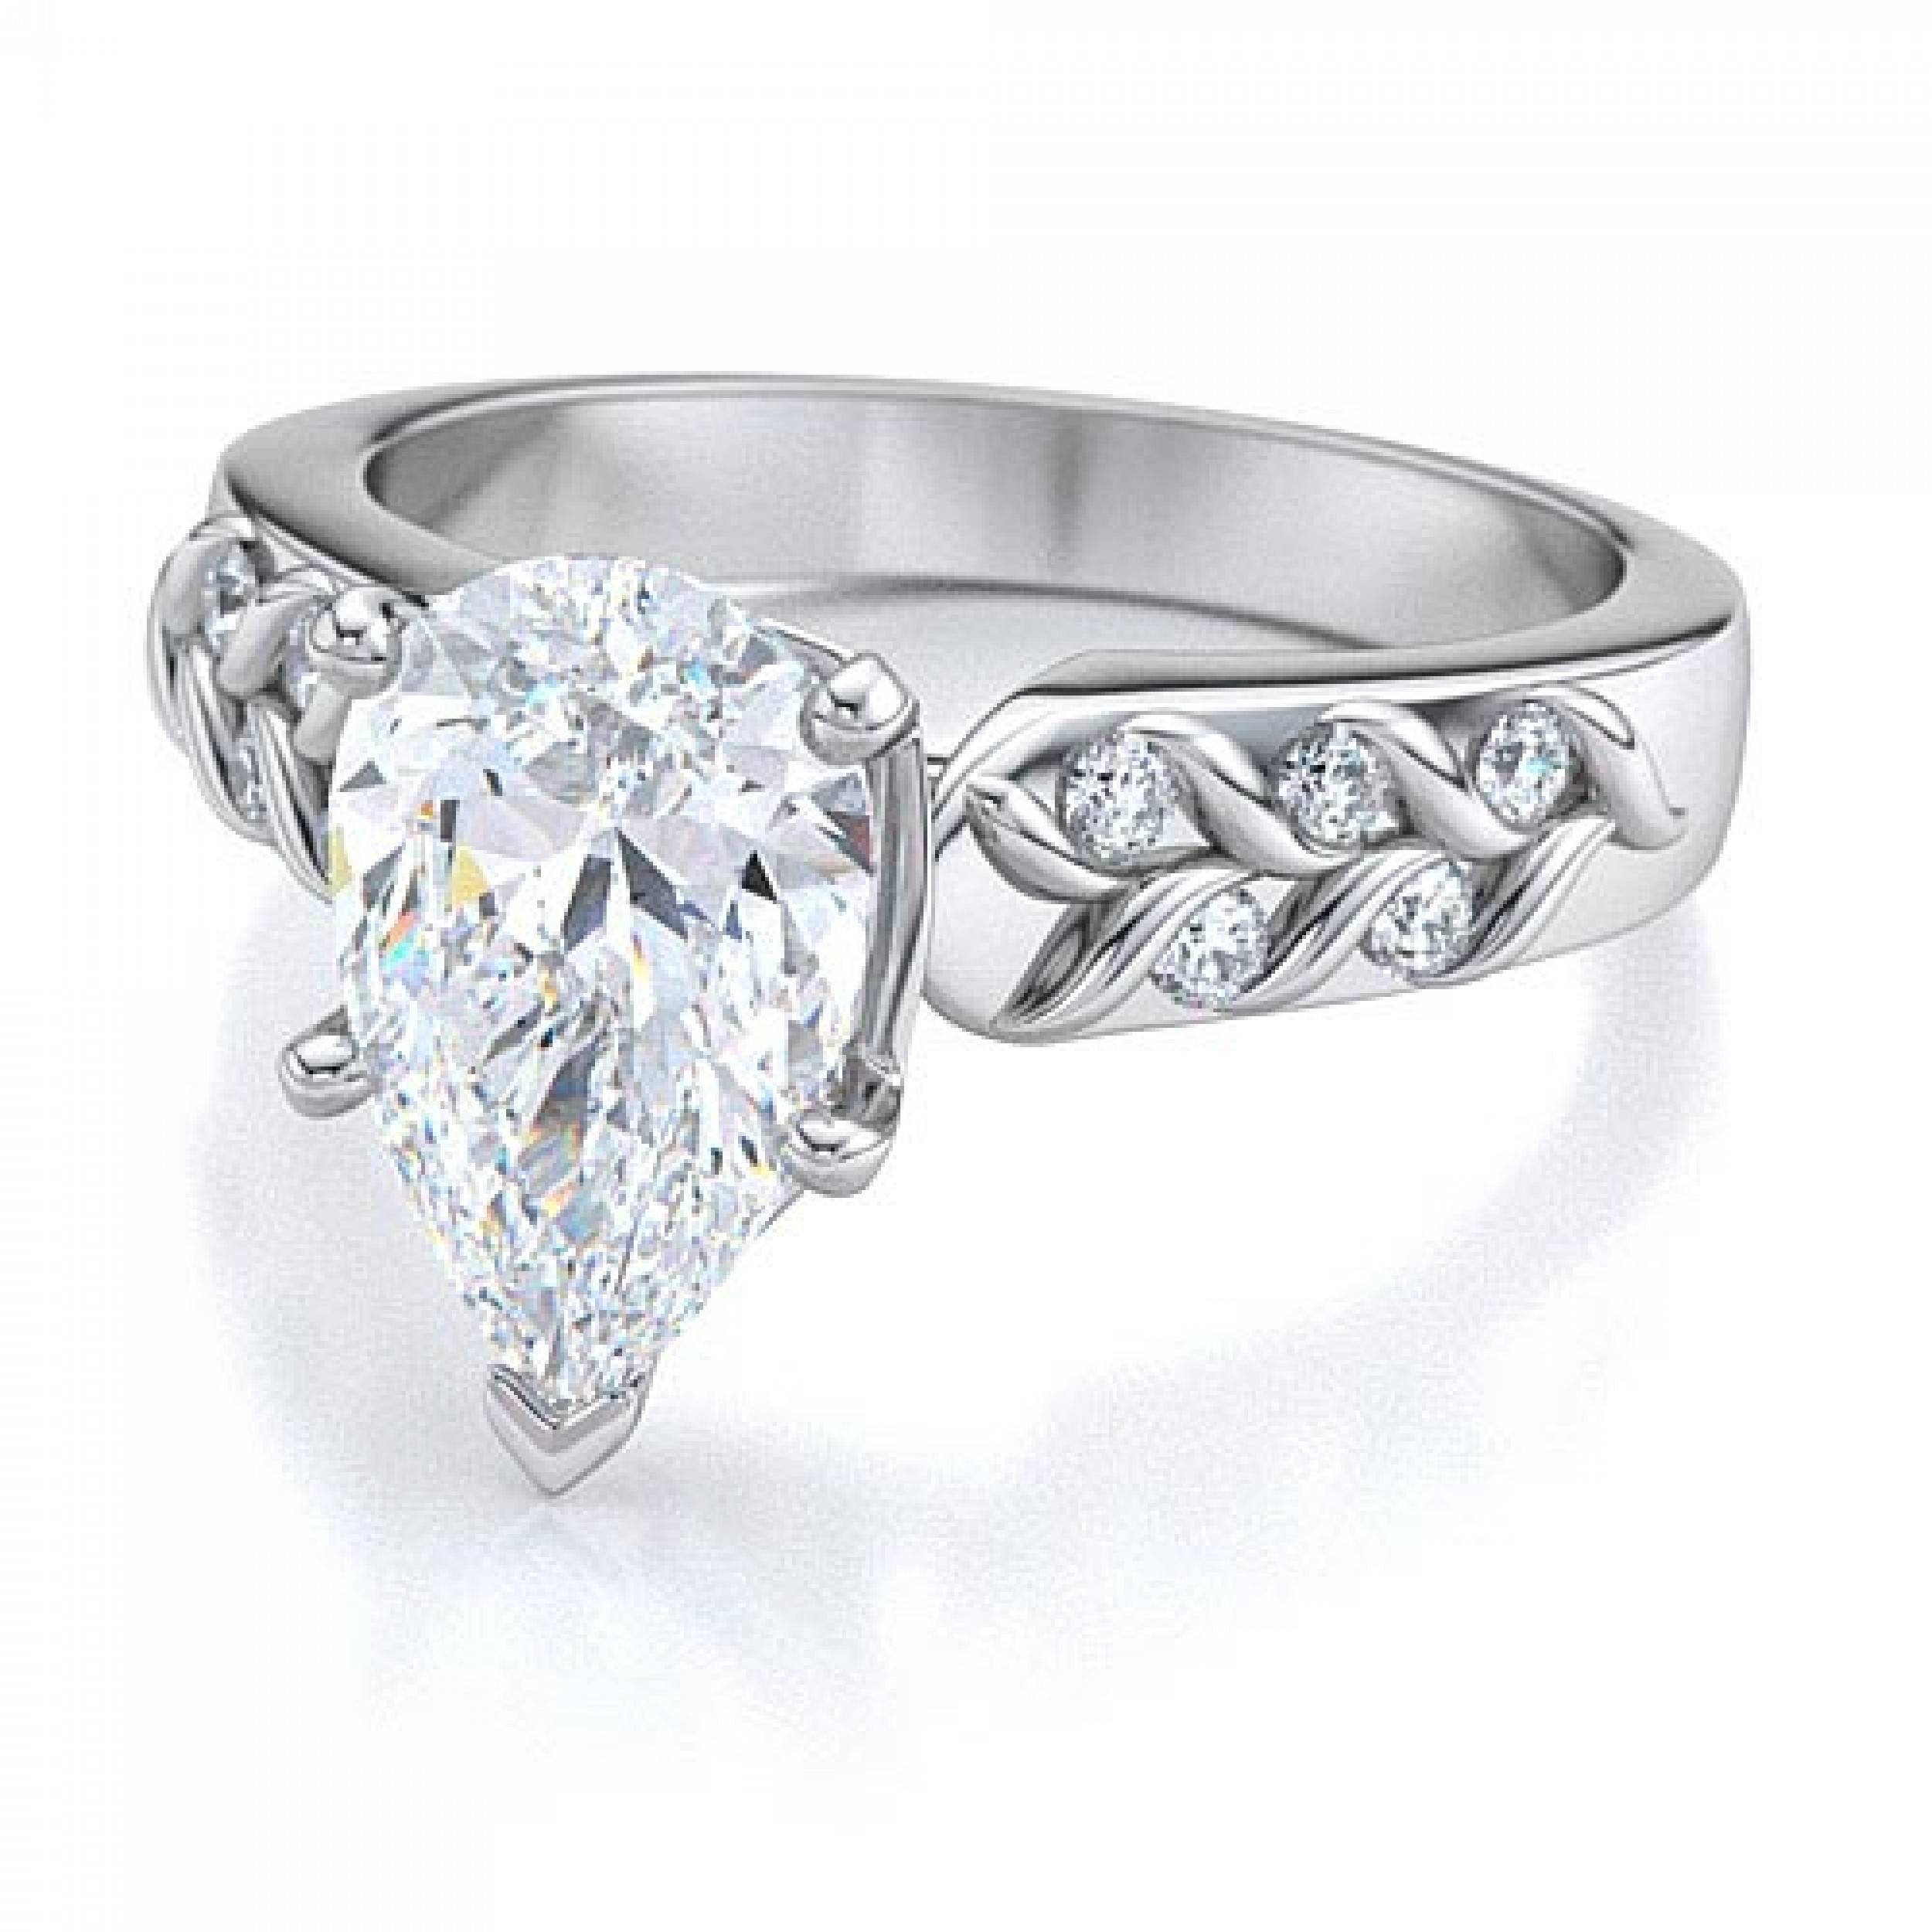 ring future pin settings engagement diamond marquise embrace setting jewellery